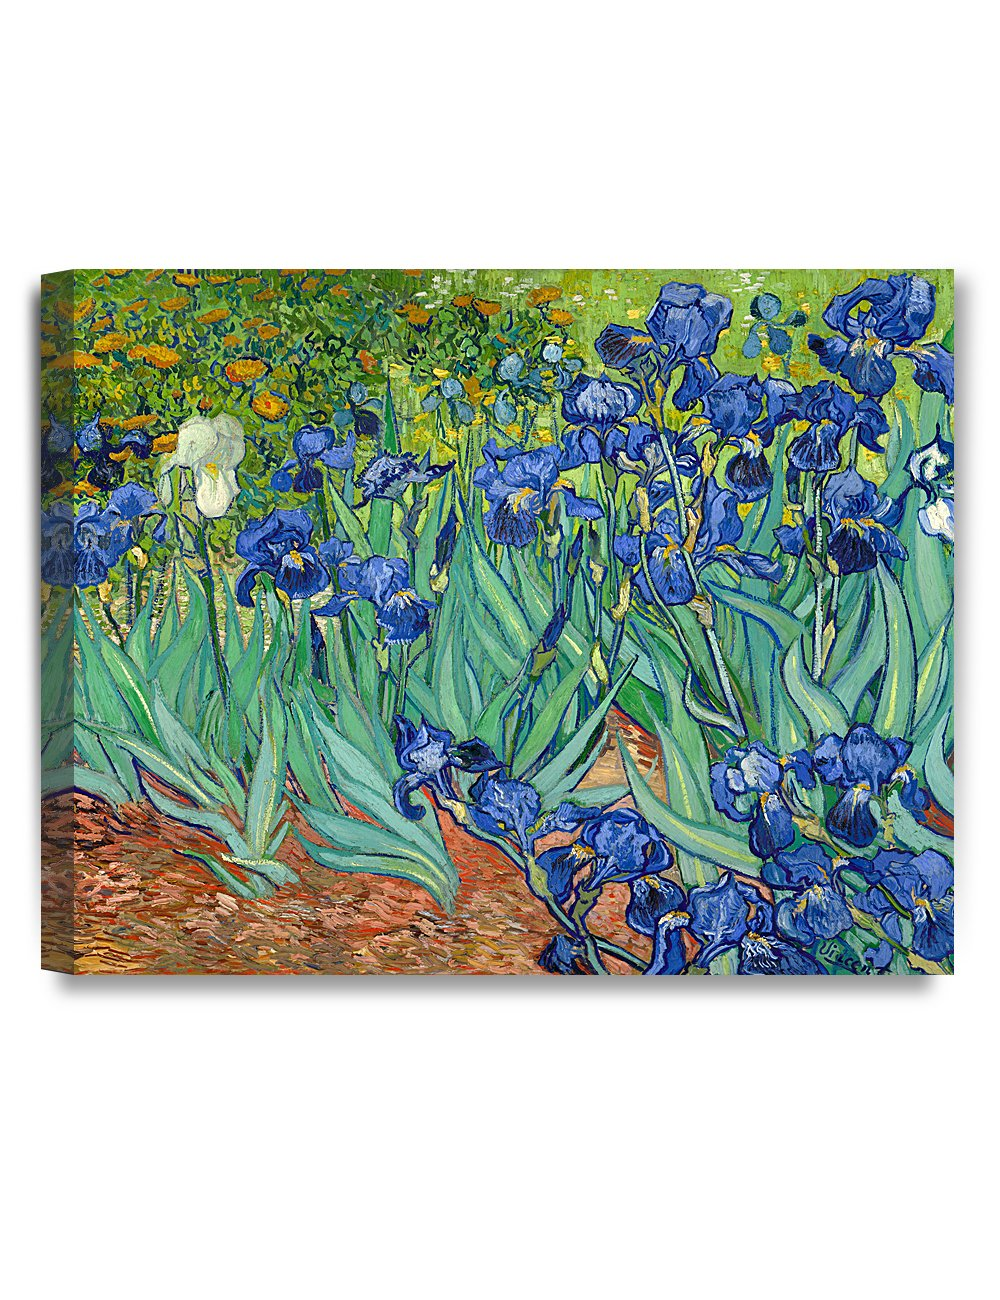 DECORARTS - Irises in The Garden, Vincent Van Gogh Art Reproduction. Giclee Canvas Prints Wall Art for Home Decor 20x16